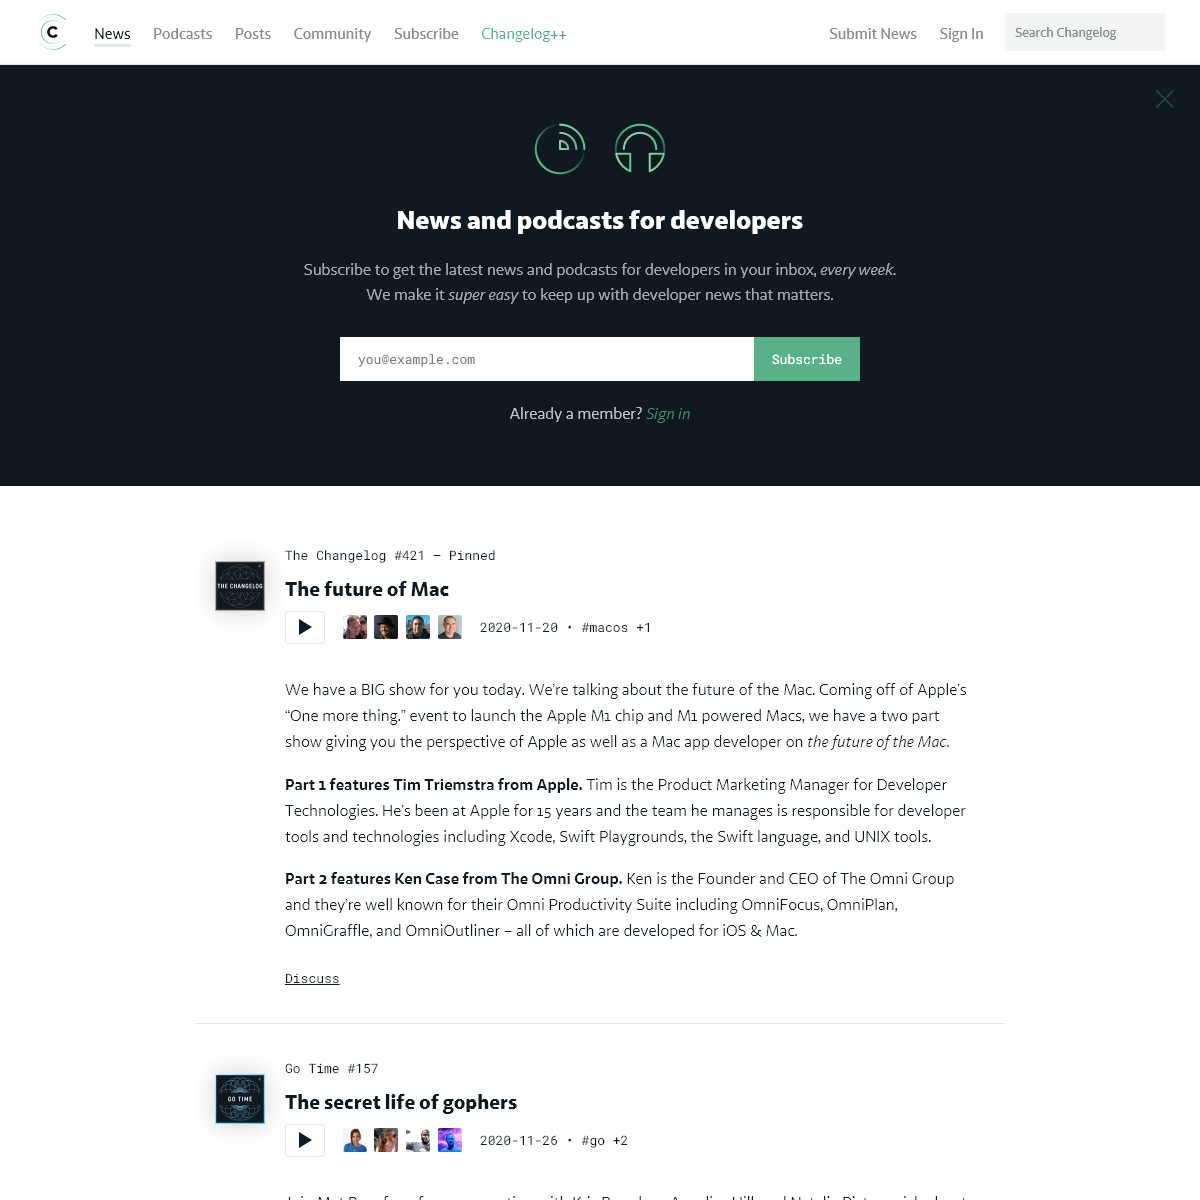 News and podcasts for developers -- Changelog